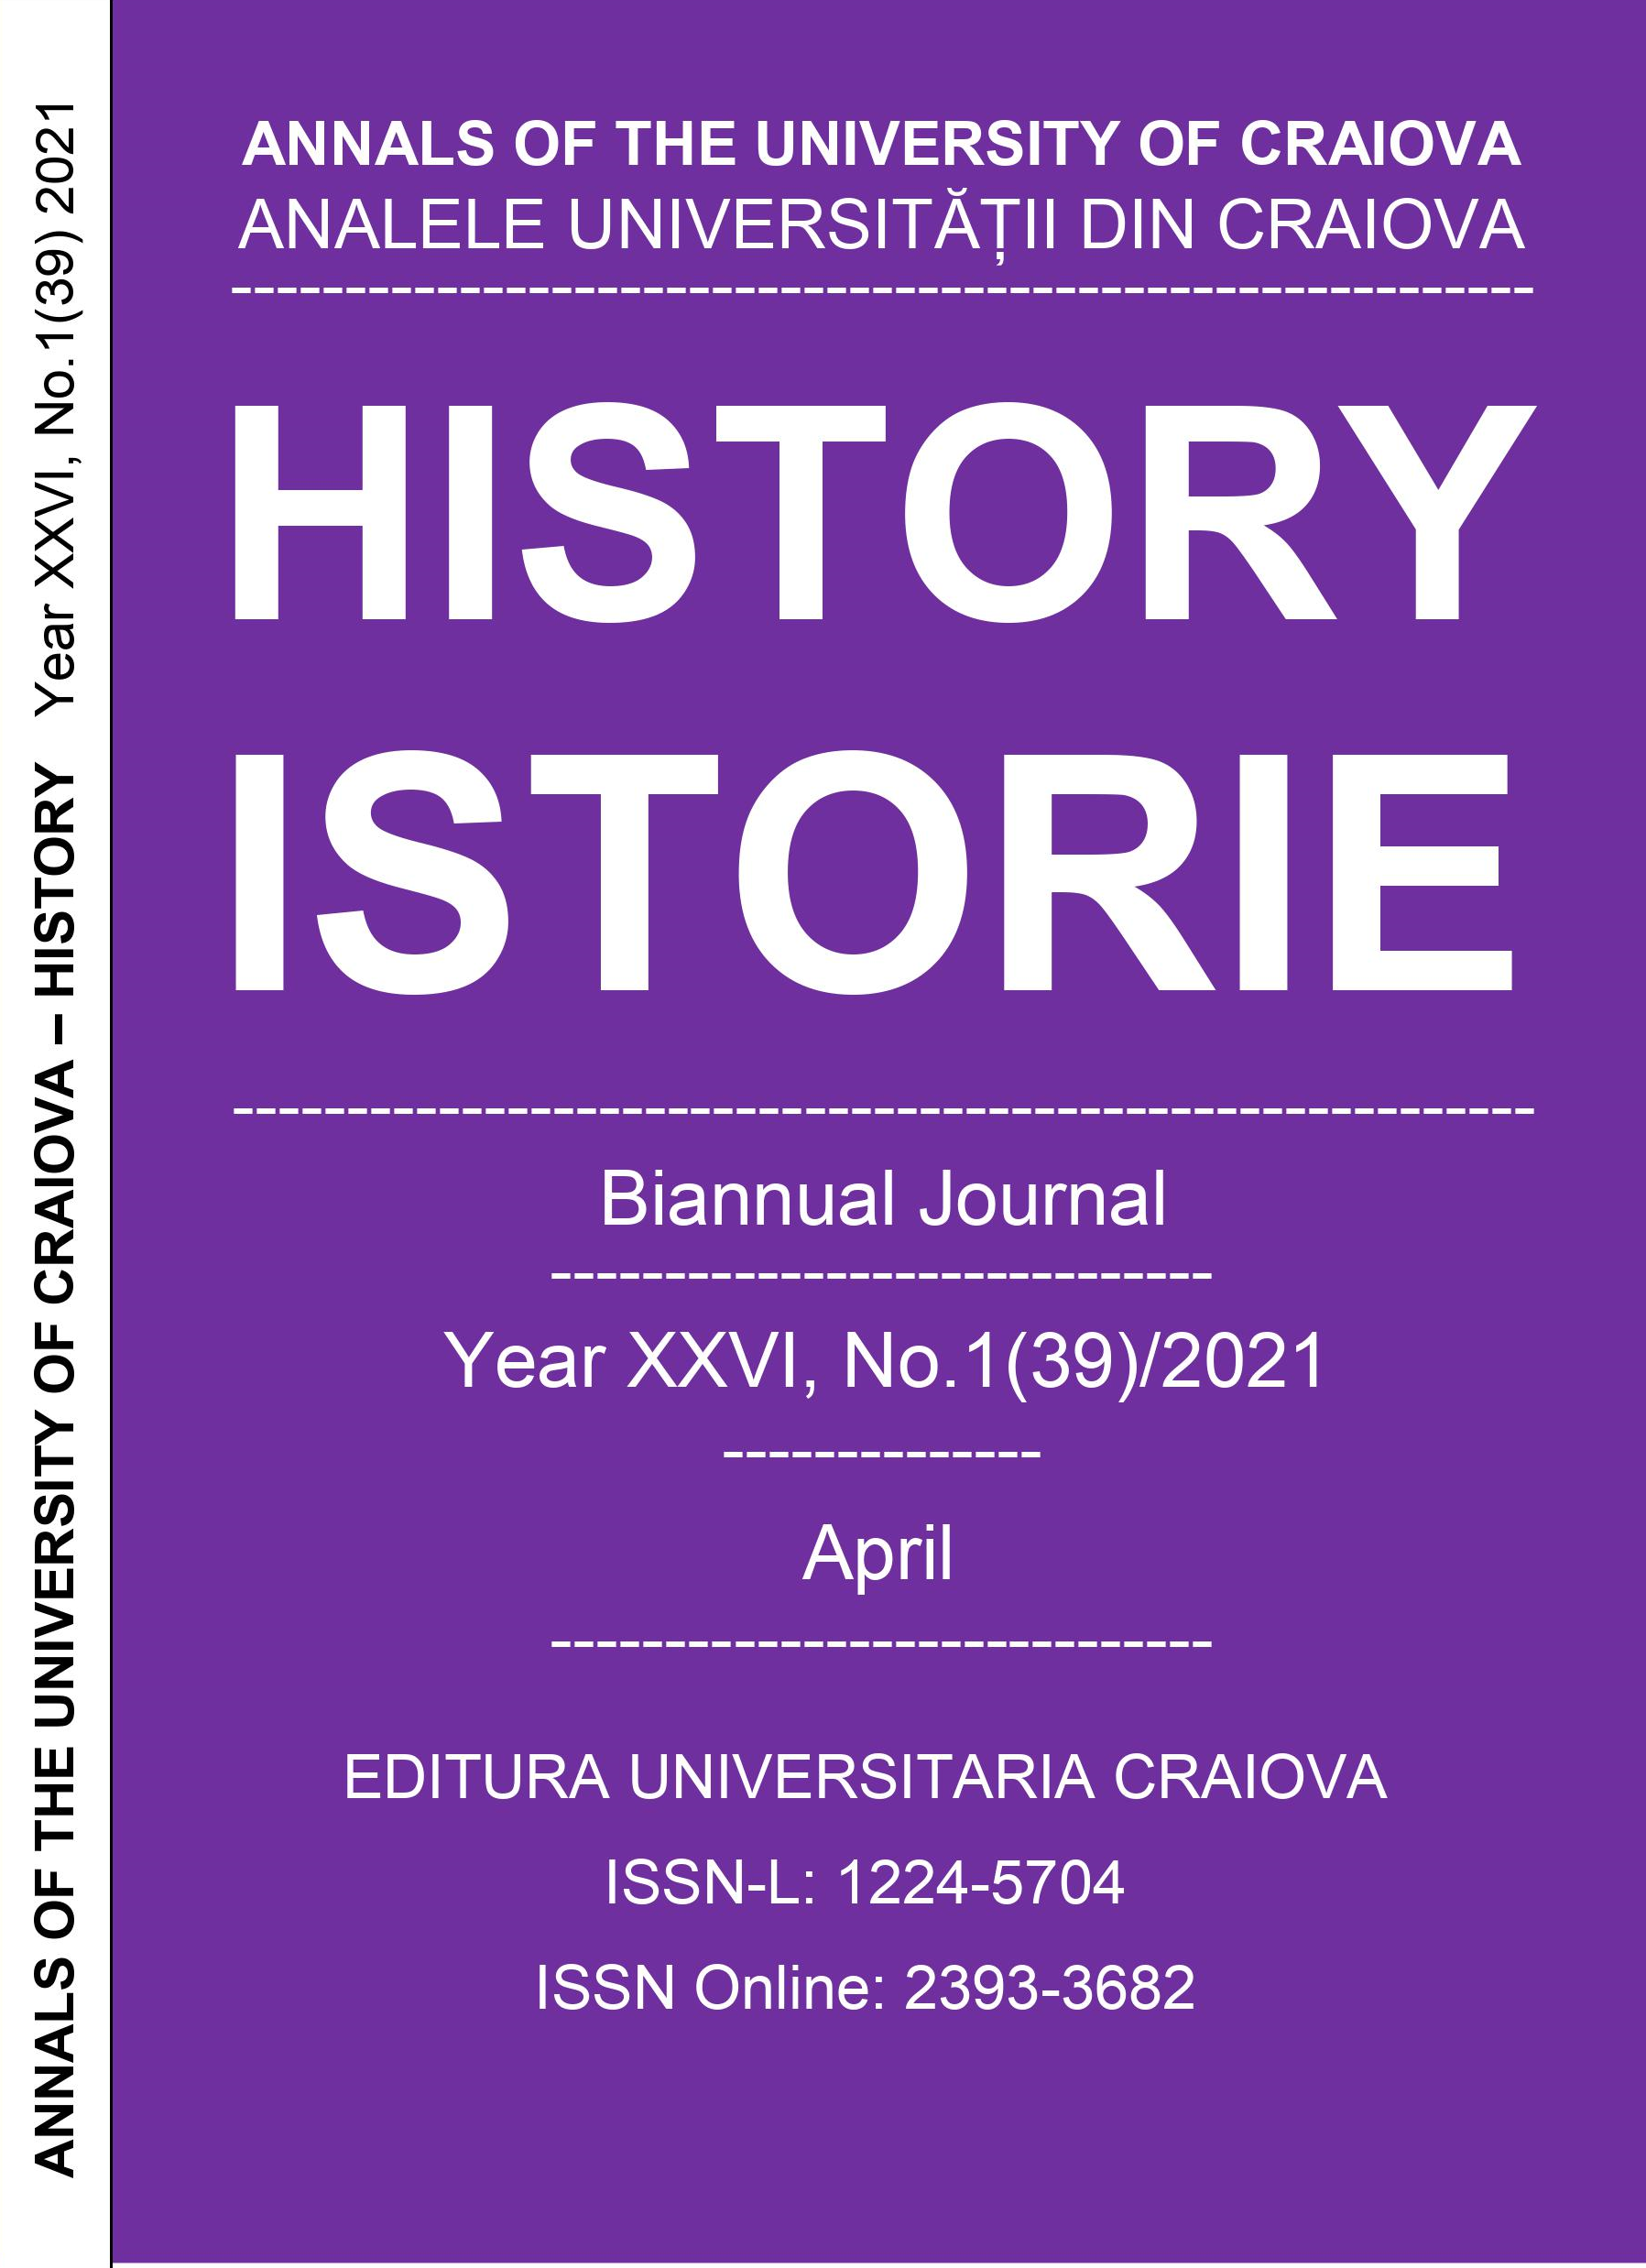 CURRENT ISSUE – APRIL 2021 - Year XXVI, No.1(39)/2021